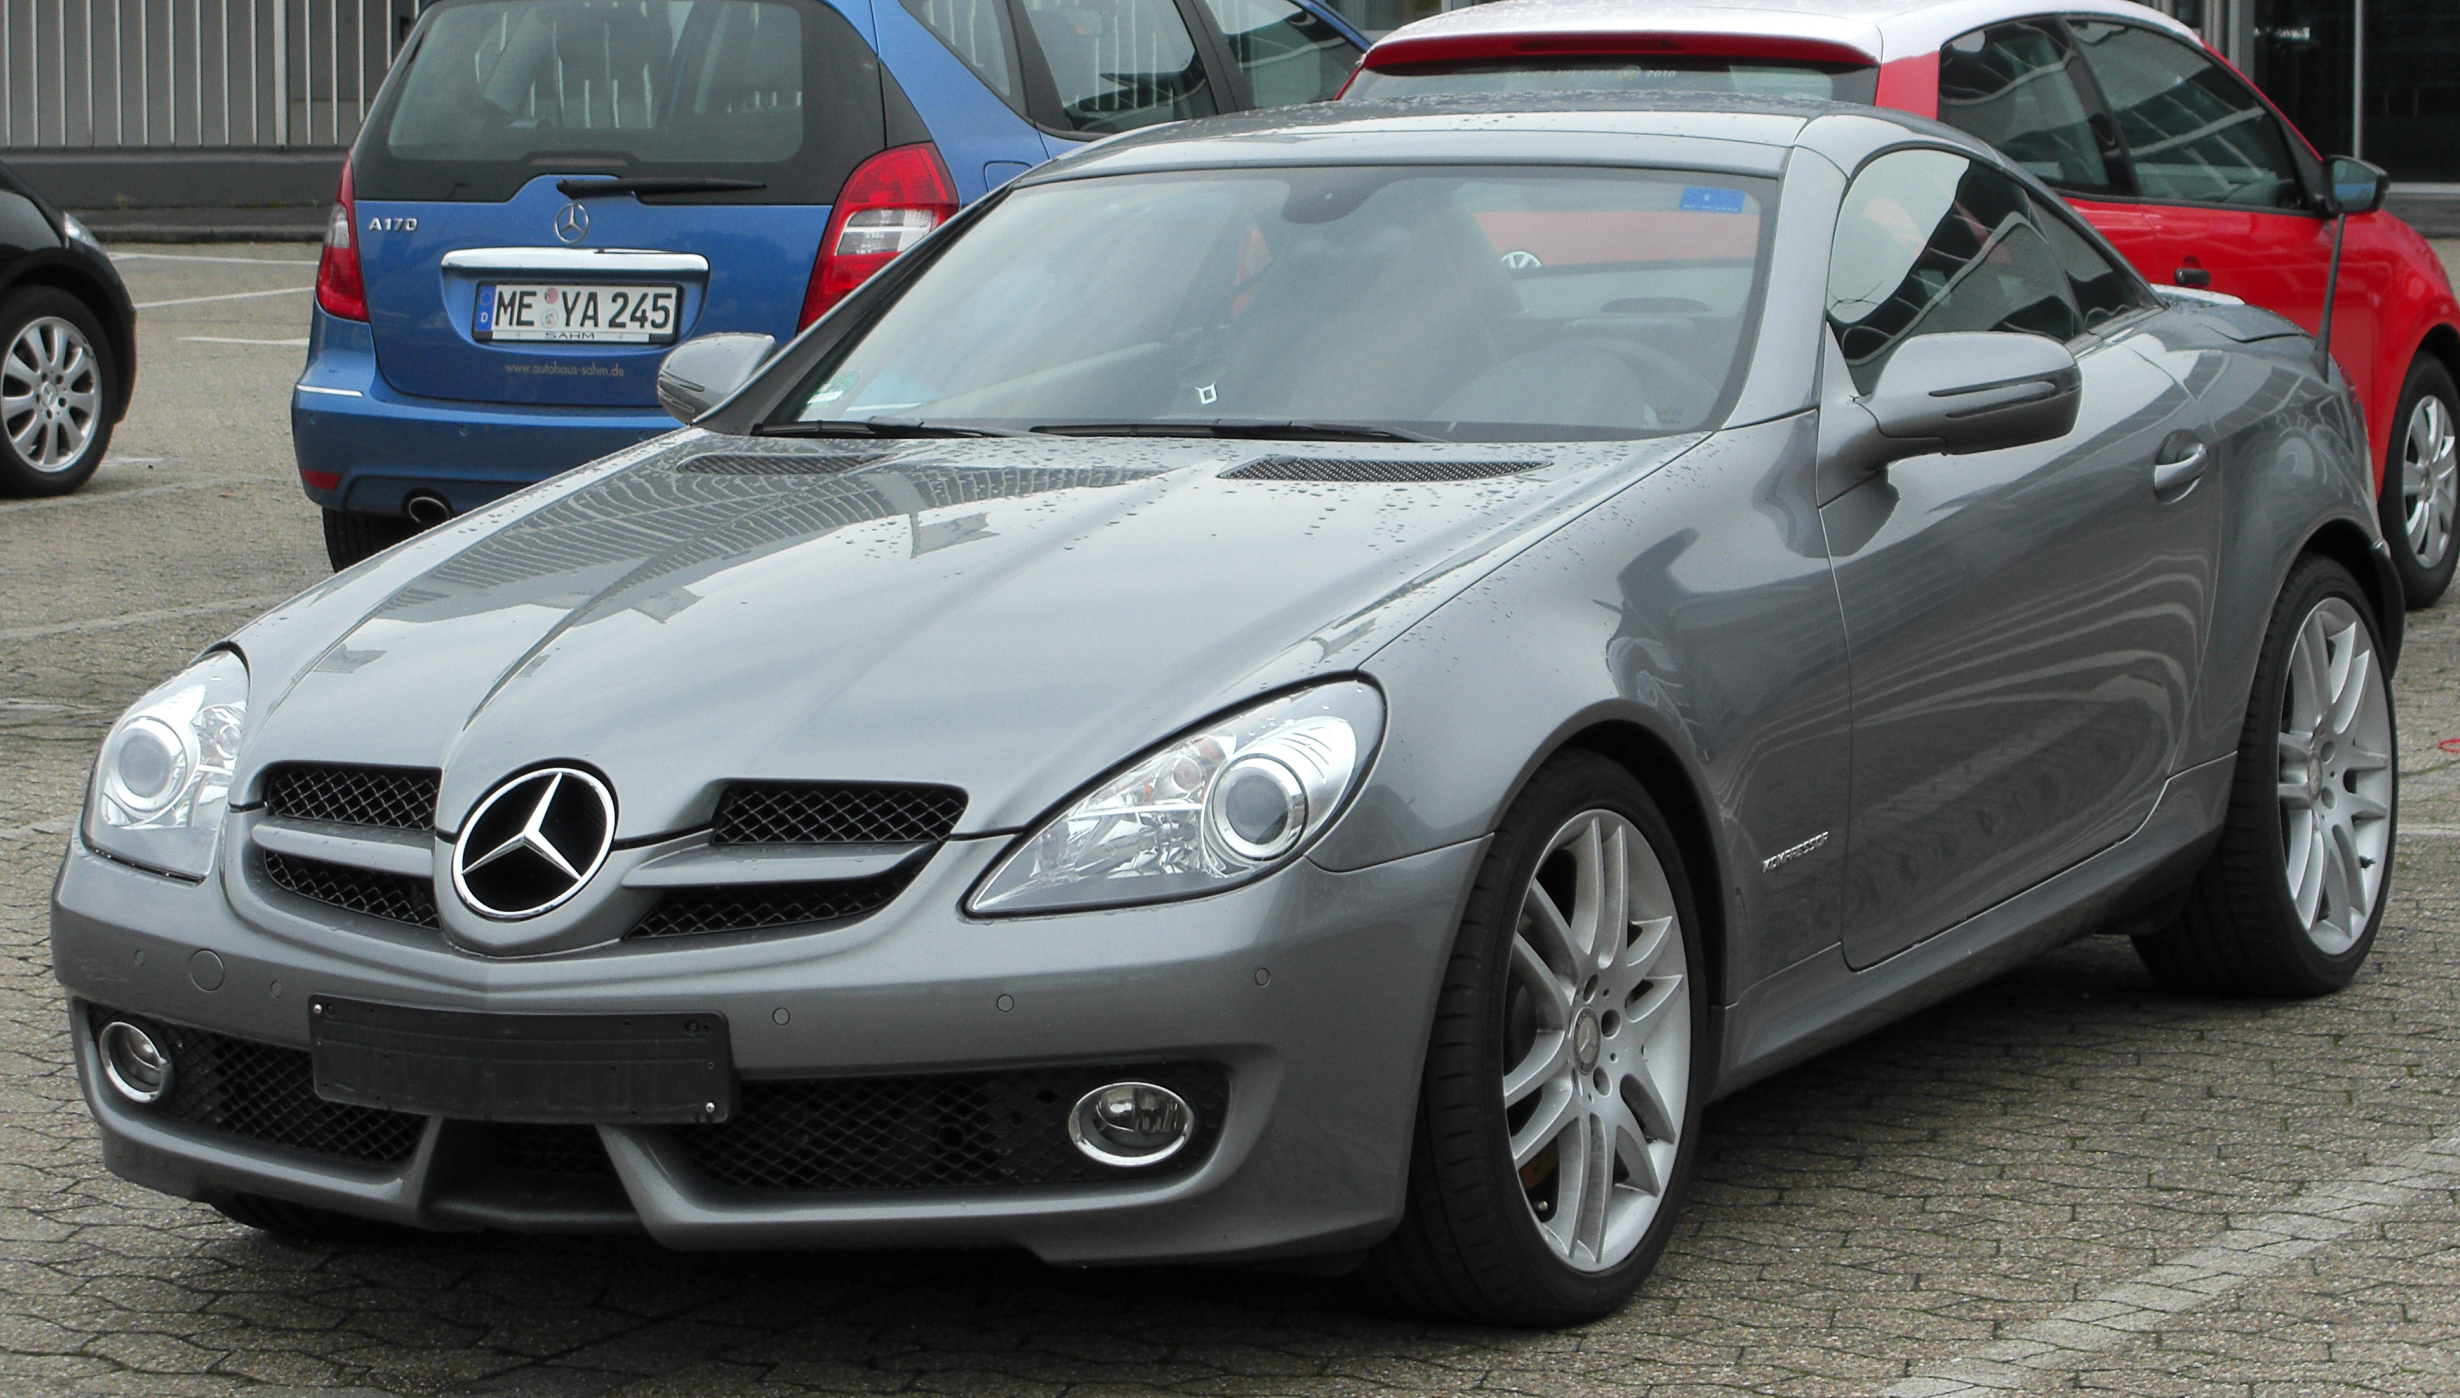 file mercedes slk 200 kompressor sportpaket r171 facelift front. Black Bedroom Furniture Sets. Home Design Ideas